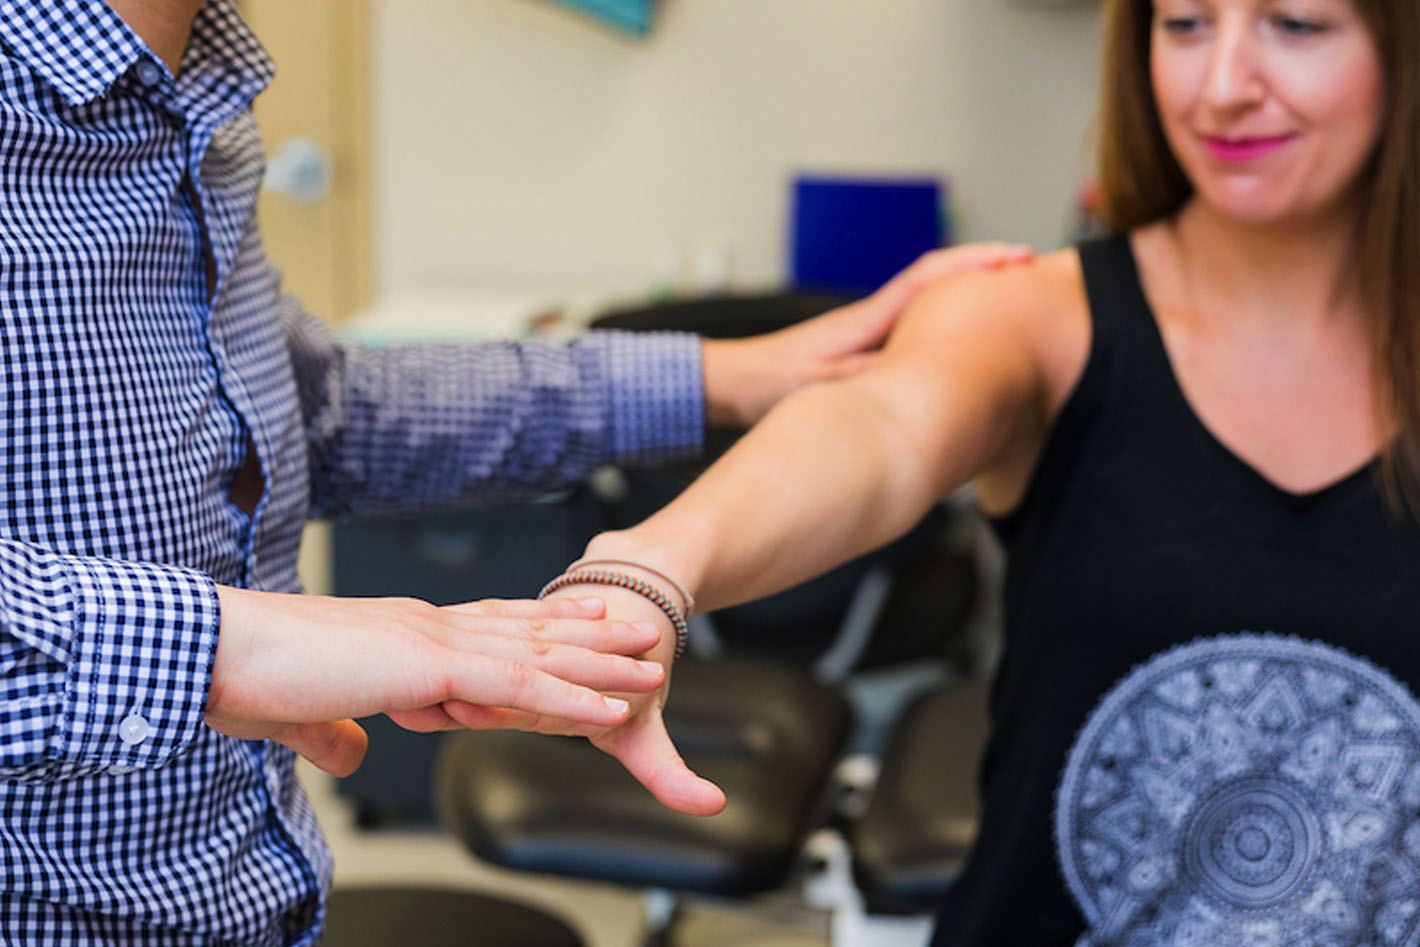 Sports medicine physician assessing patient's arm; medical services thumbnail